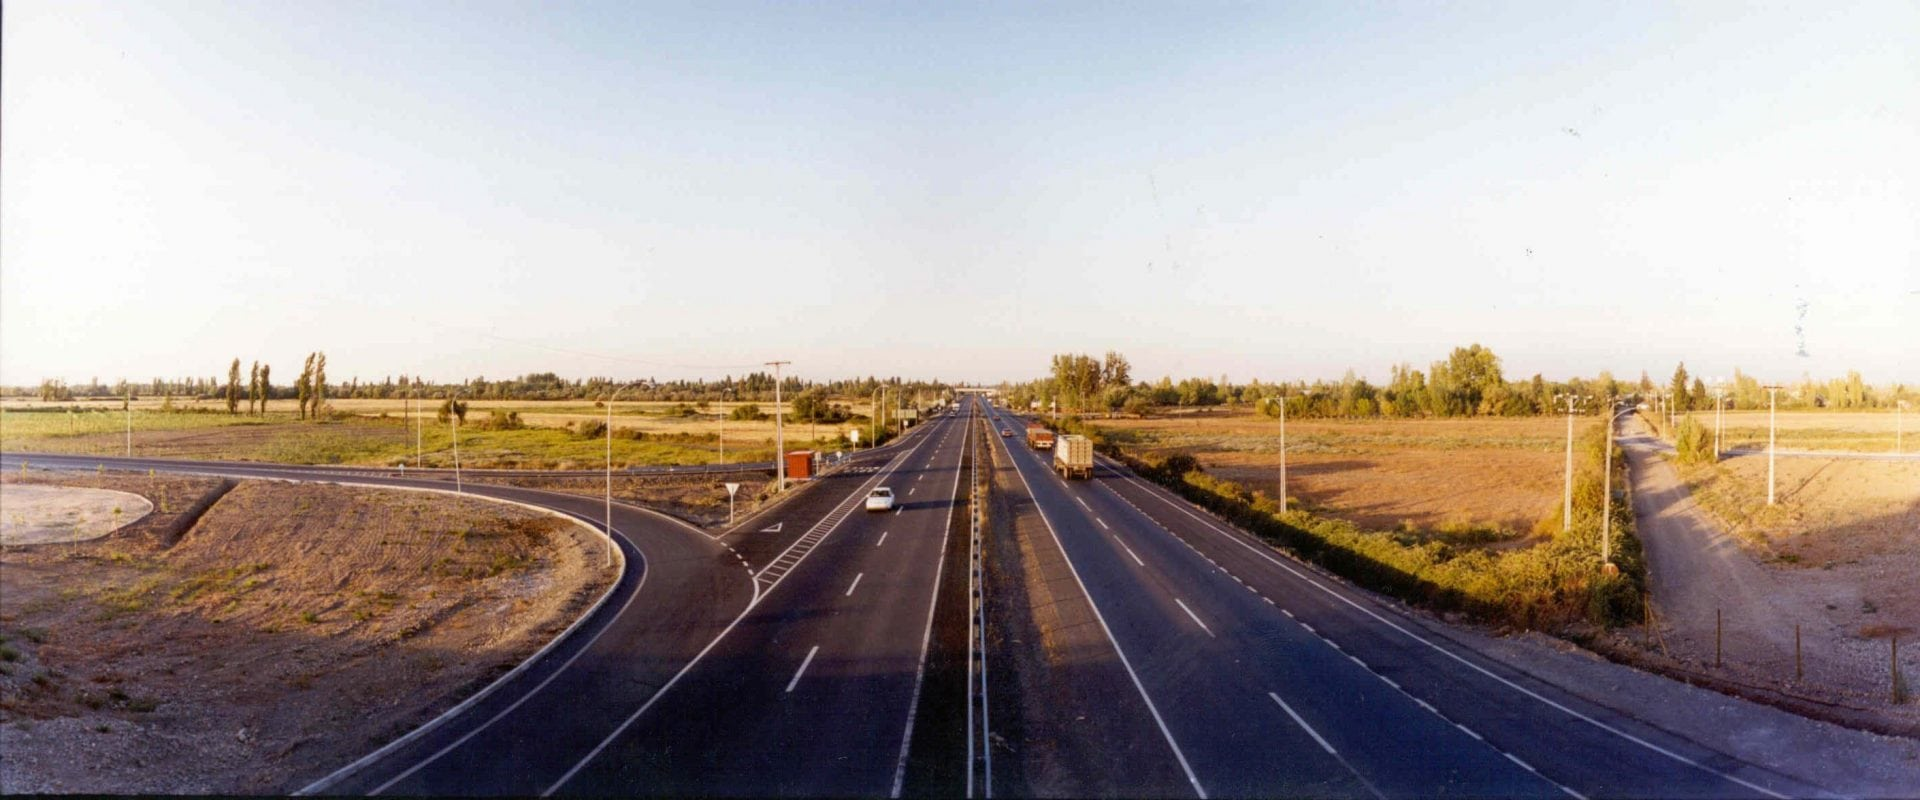 Ferrovial awarded construction of a section of highway in Peru for €100 million